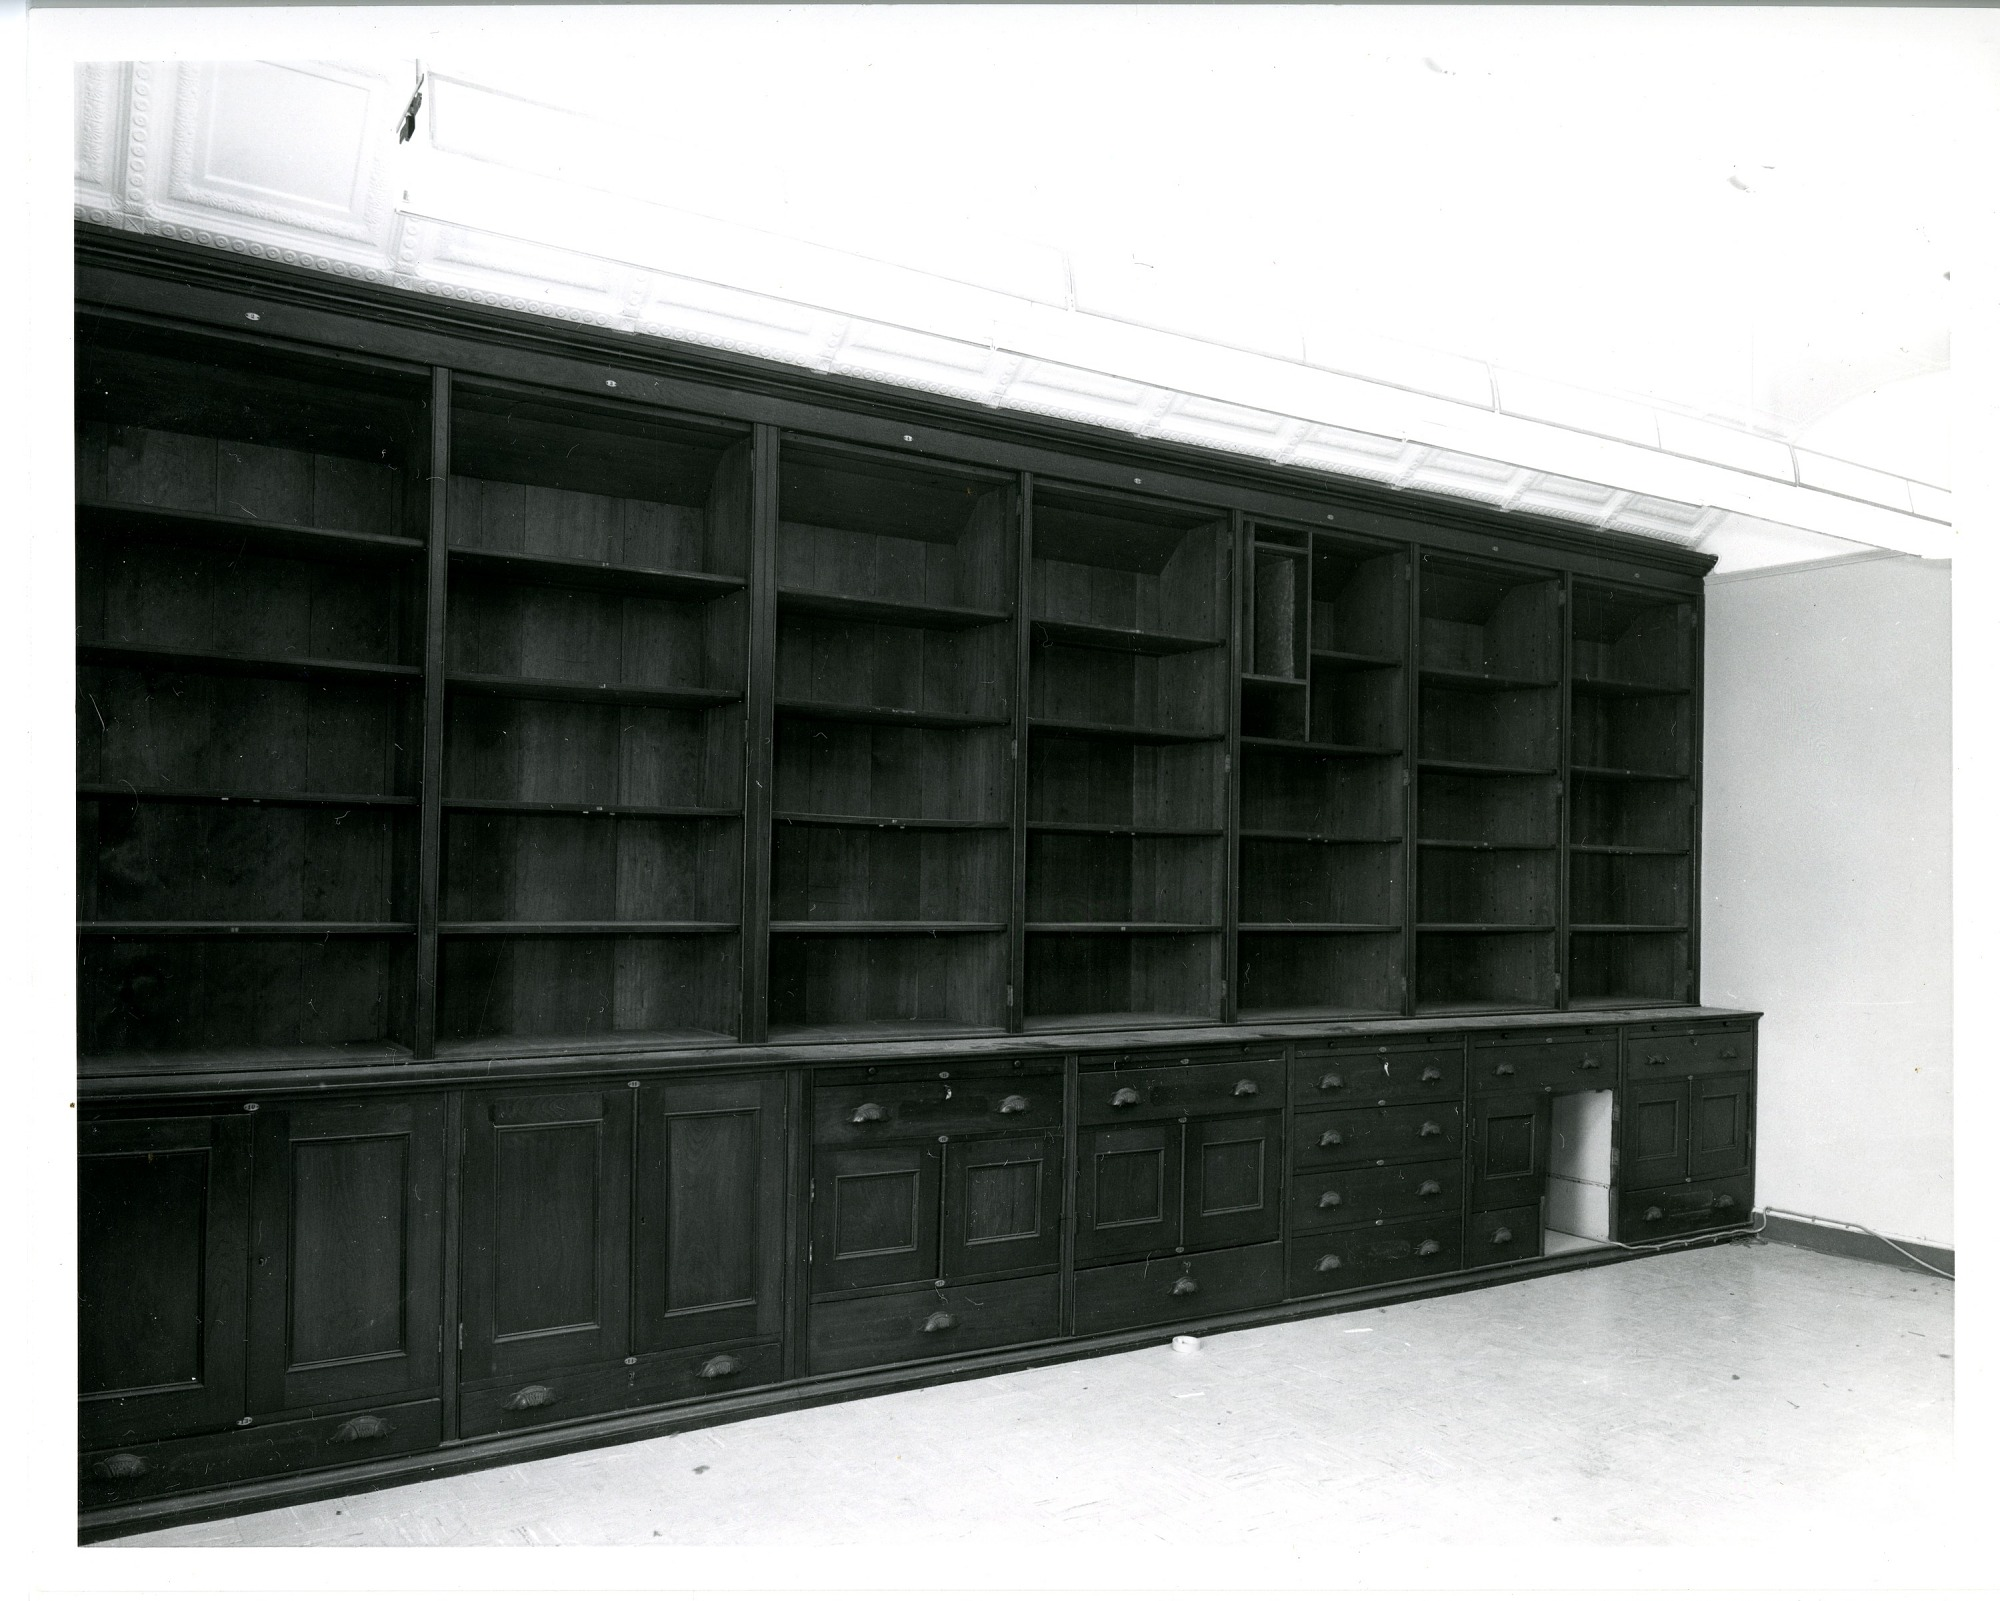 Old Archives Area, Fourth Floor, Smithsonian Institution Building, Photo 5 of 11